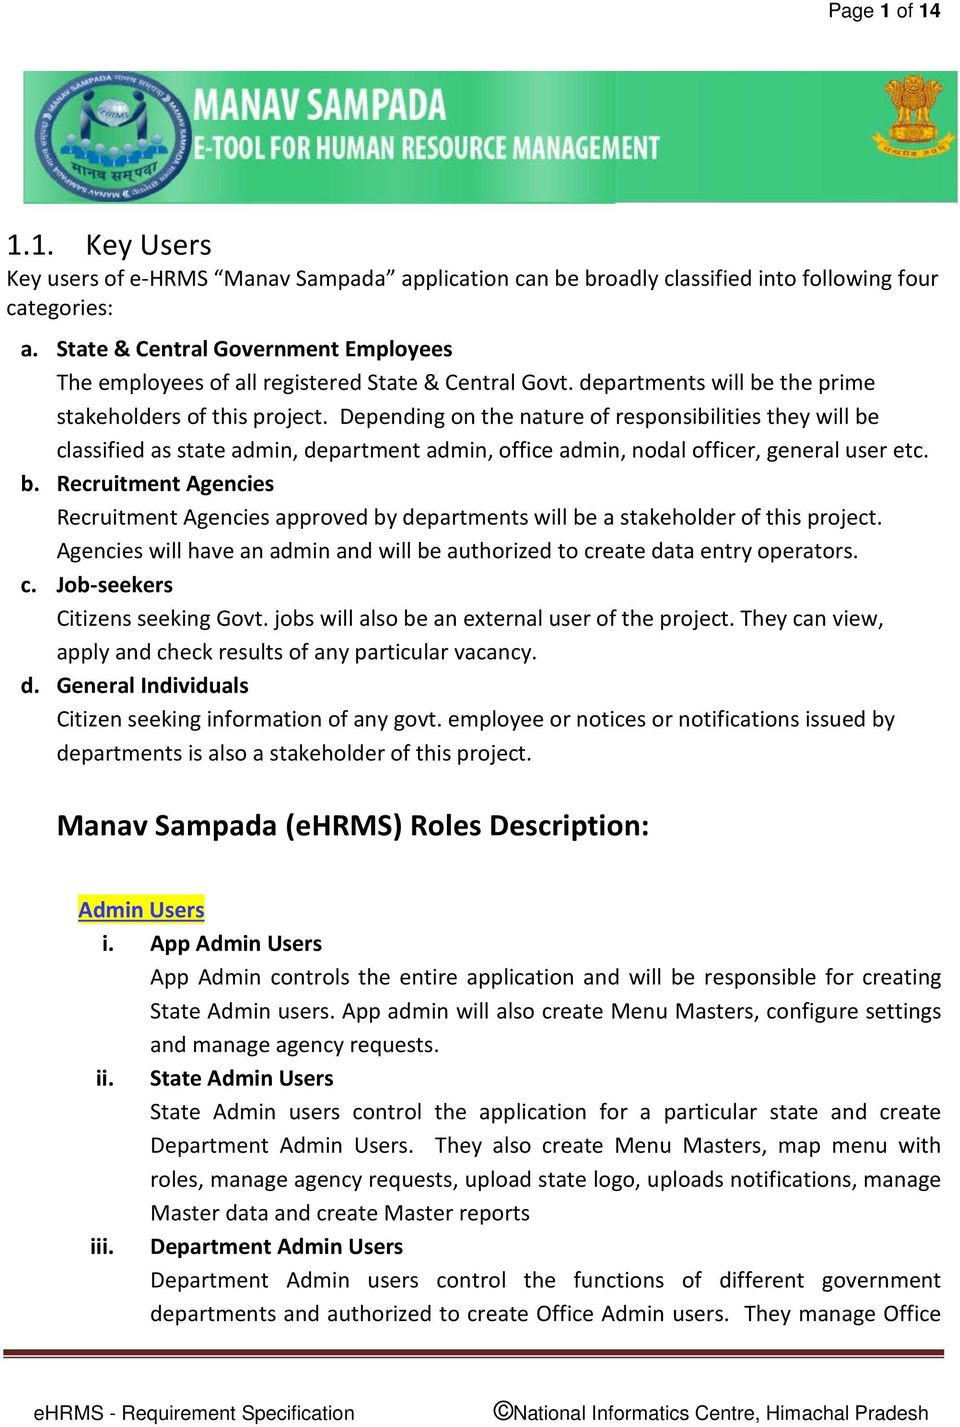 manav sampada ehrms roles description pdf depending on the nature of responsibilities they will be classified as state admin department admin